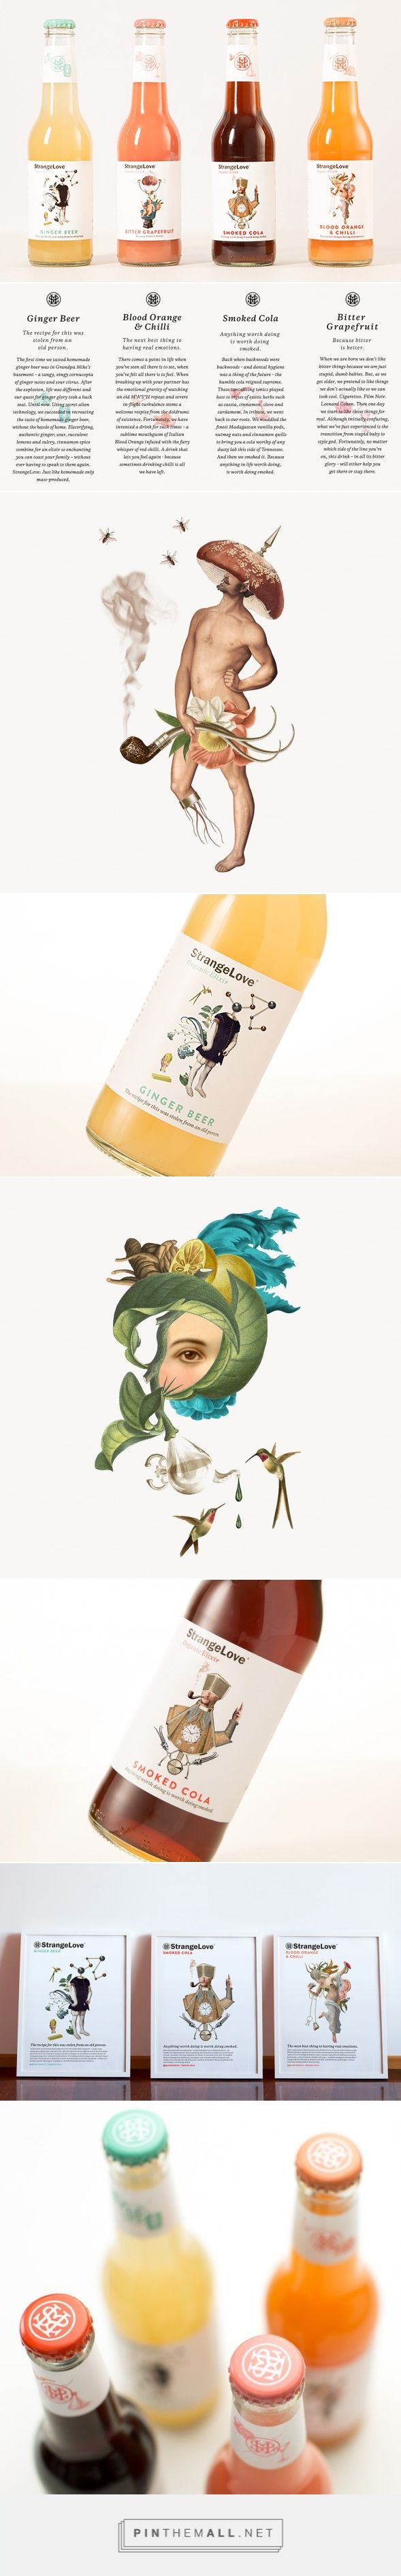 Эликсир «Странная любовь Strange Love beverage packaging curated by Packaging Diva PD. Weird but I like it.